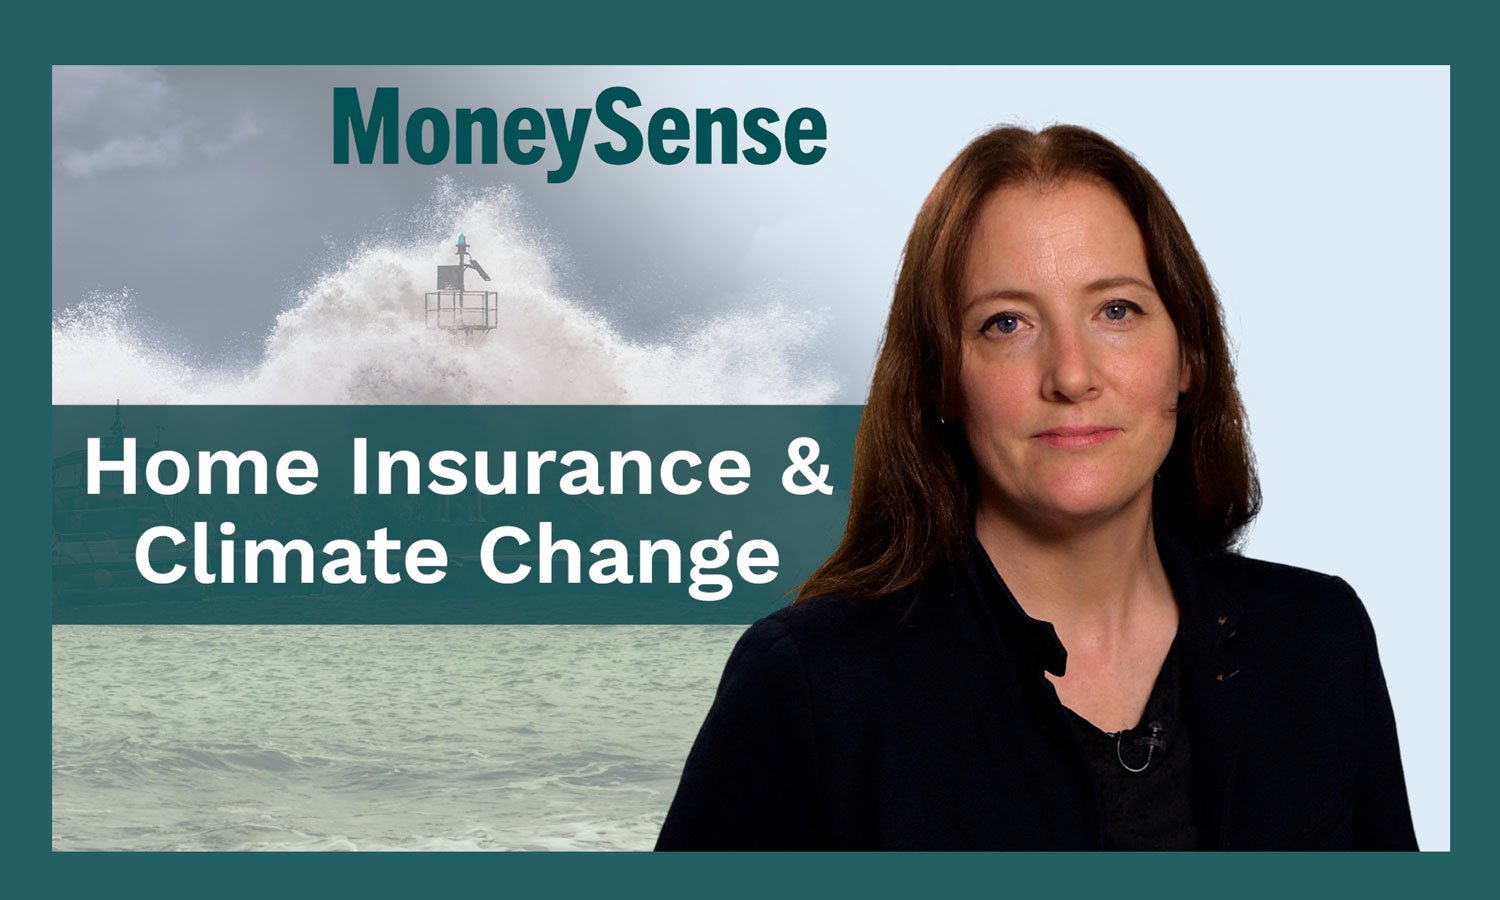 Video: Home insurance & climate change